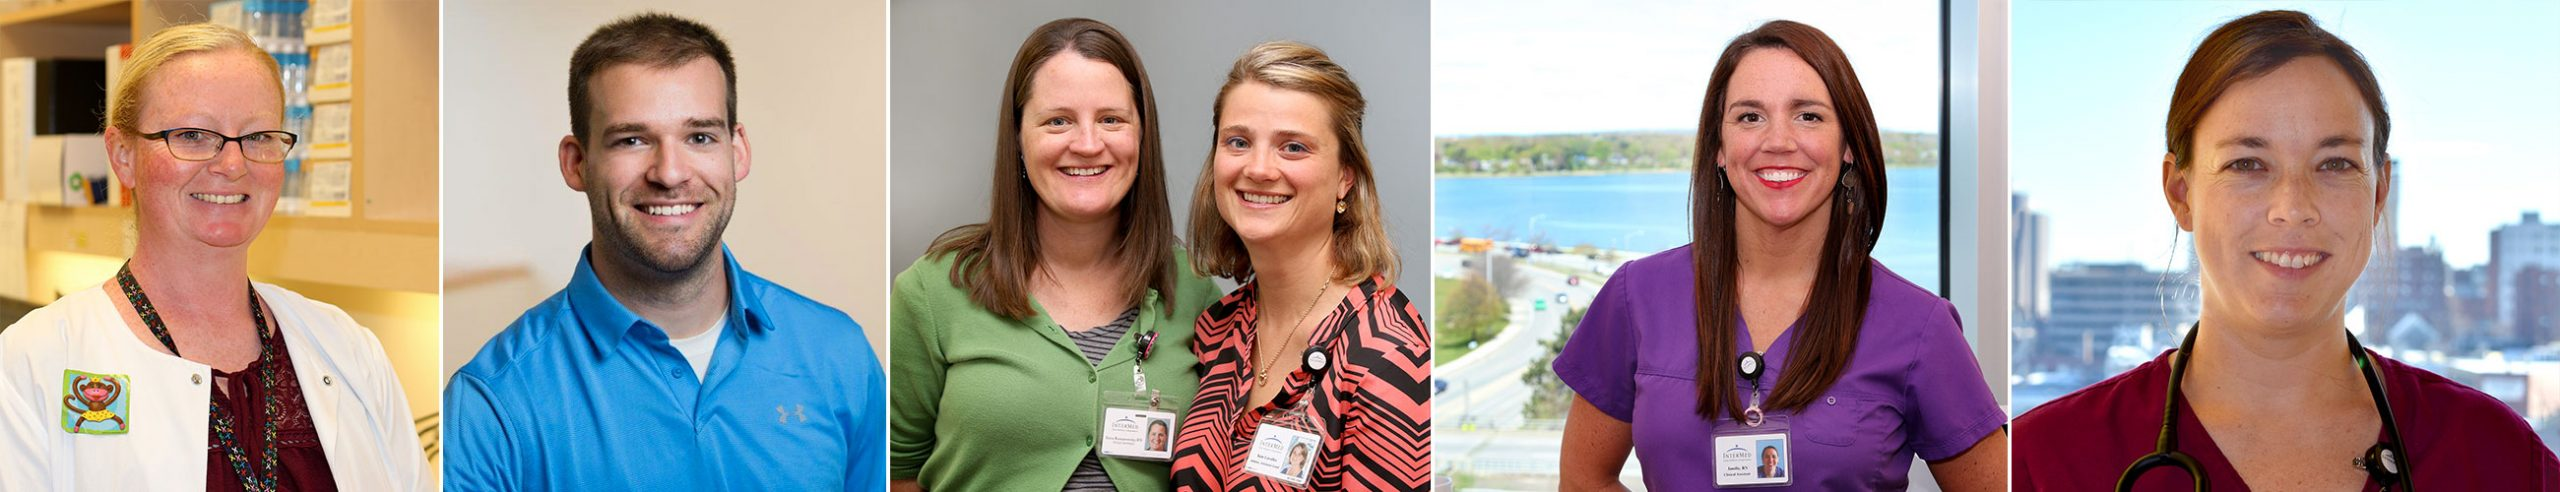 A collage of smiling faces of providers who work at InterMed, P.A., in Maine